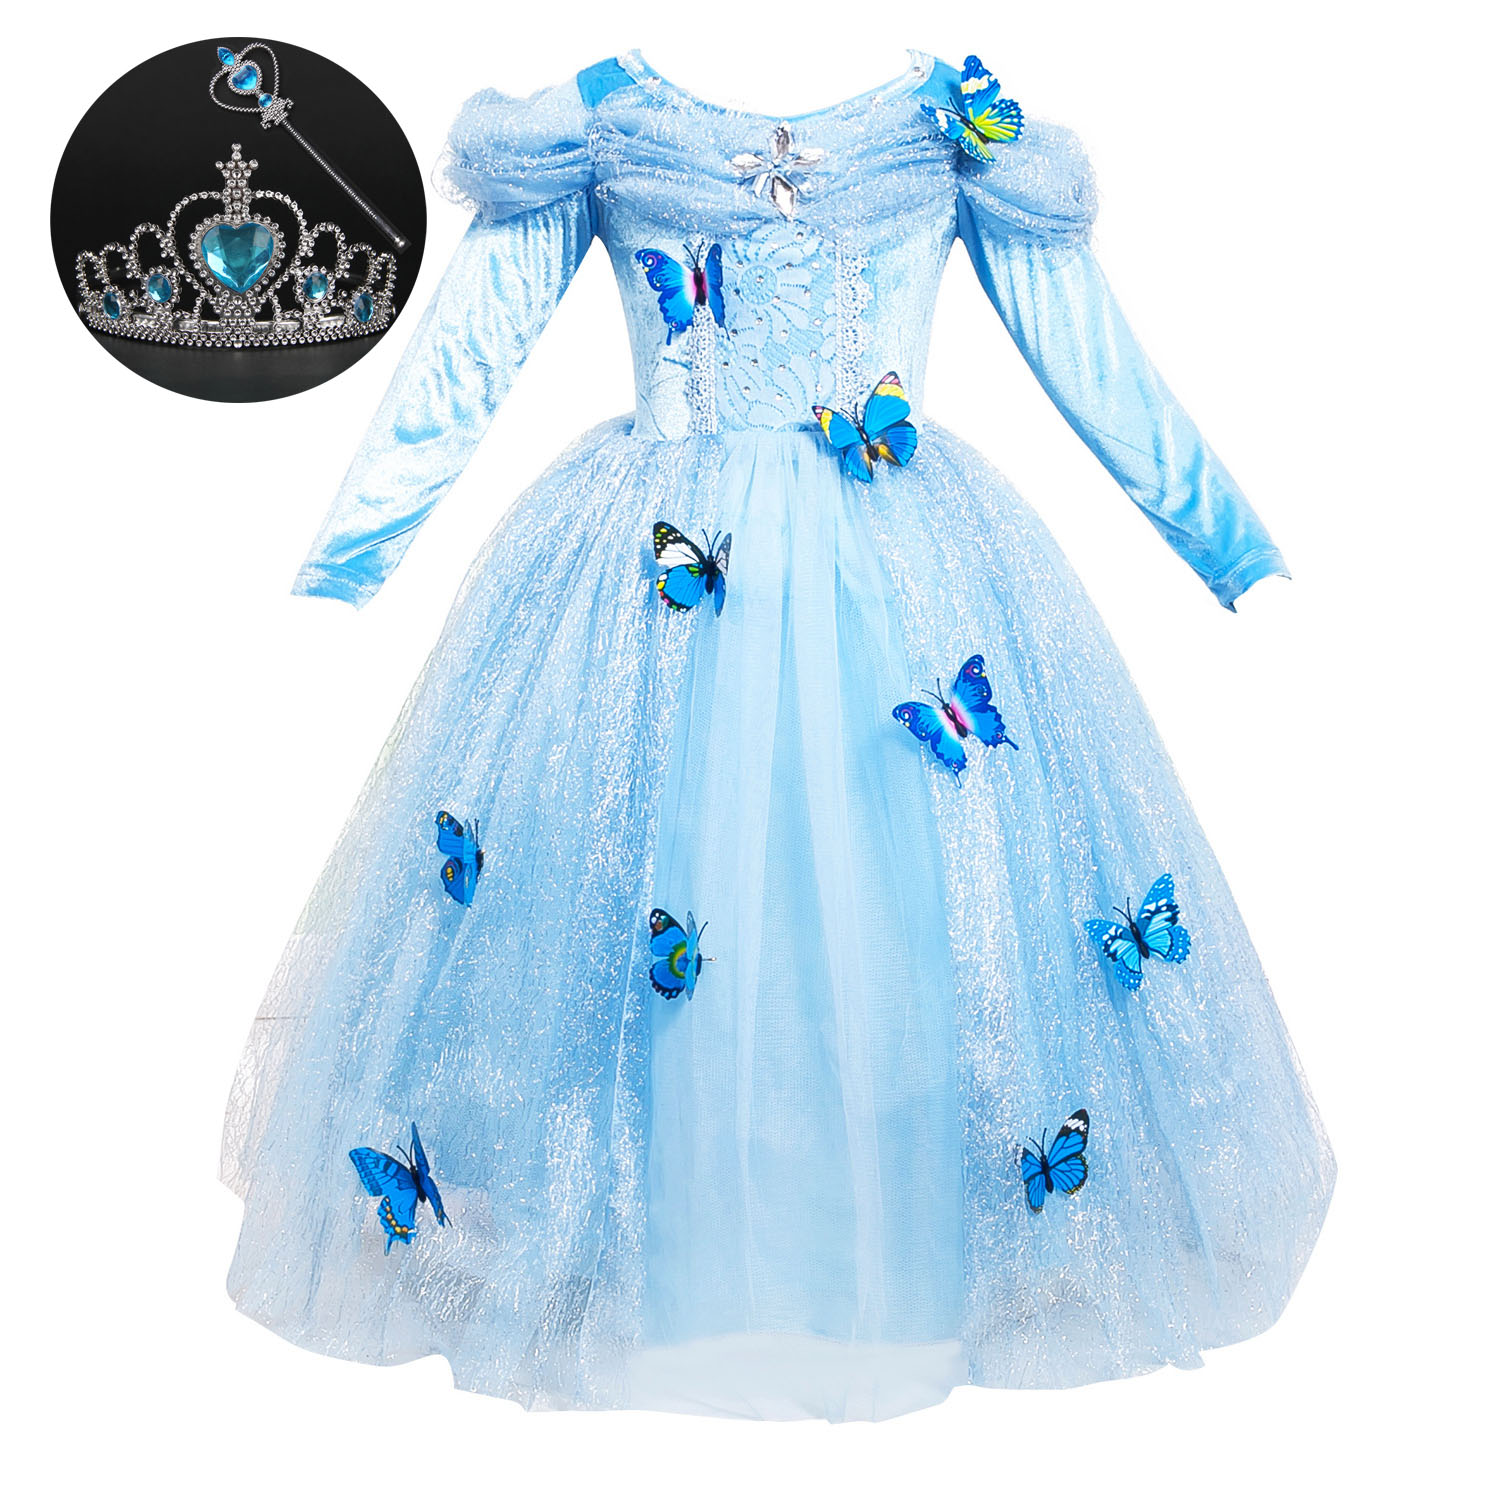 2017 Fashion Long Sleeve Kids Carnival Princess Bell Beauty and The Beast Ball Gown Cosplay Halloween Cute Costume for Girl new 2016 kids girl beauty and beast cosplay carnival costume kids belle princess dress for christmas halloween fantasia infantil